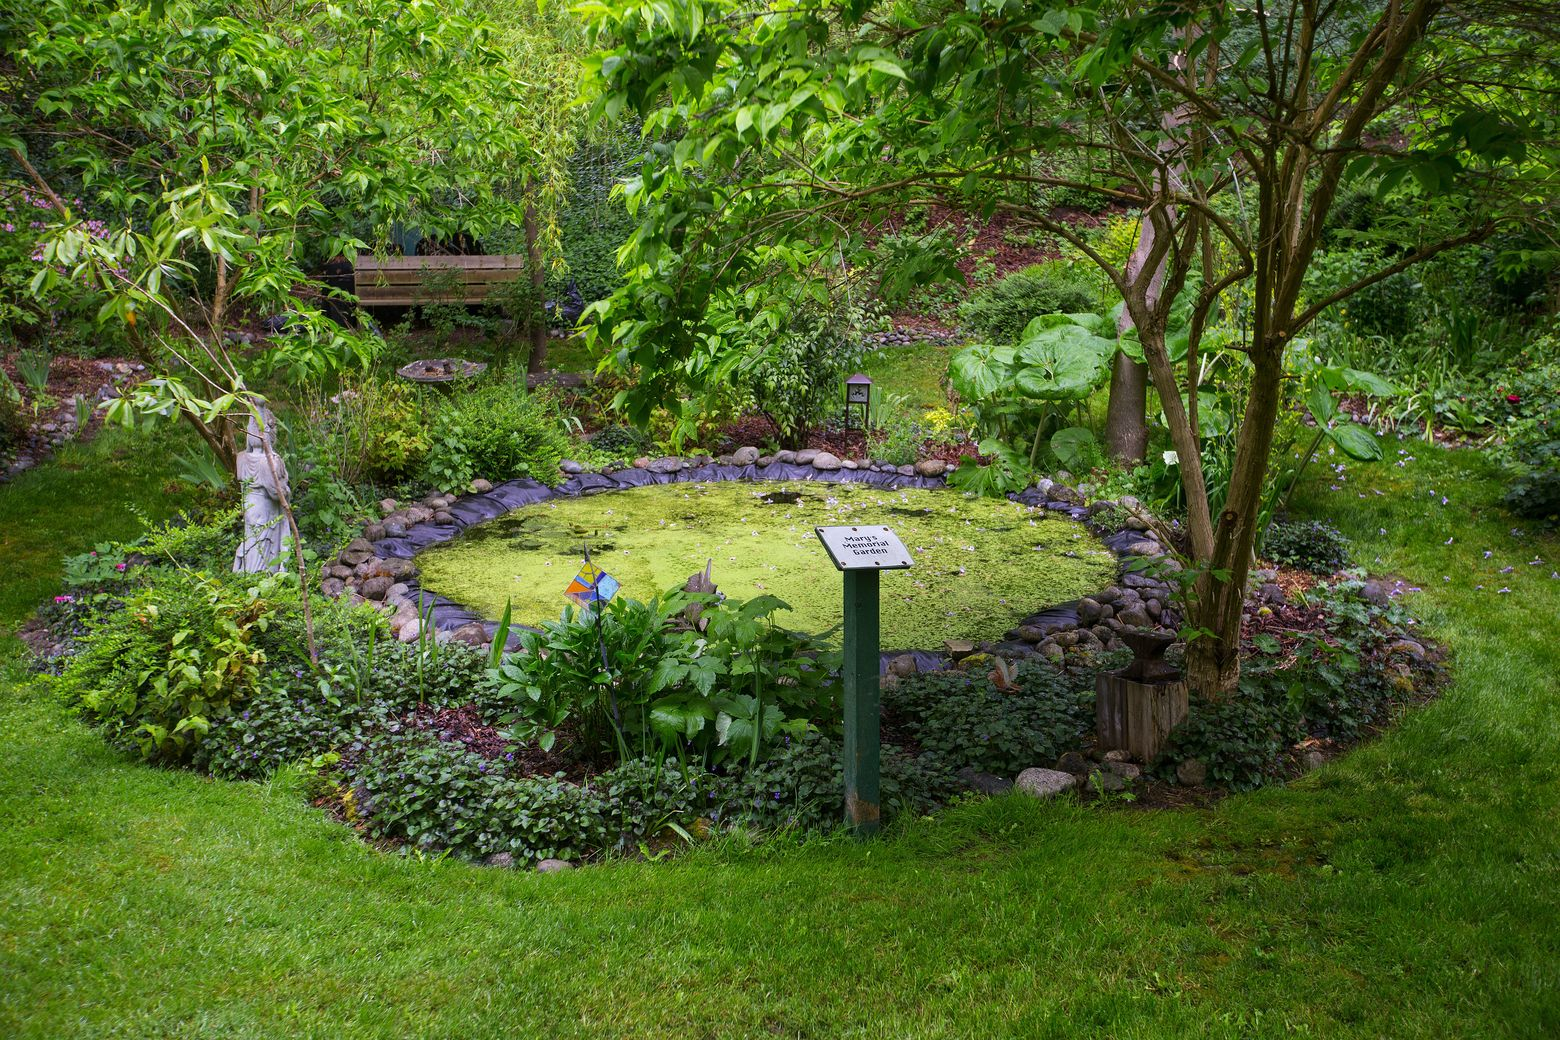 Pond. John and Marjie Bachert's Coupeville garden is designed around a giant kettle. (Mike Siegel/The Seattle Times)